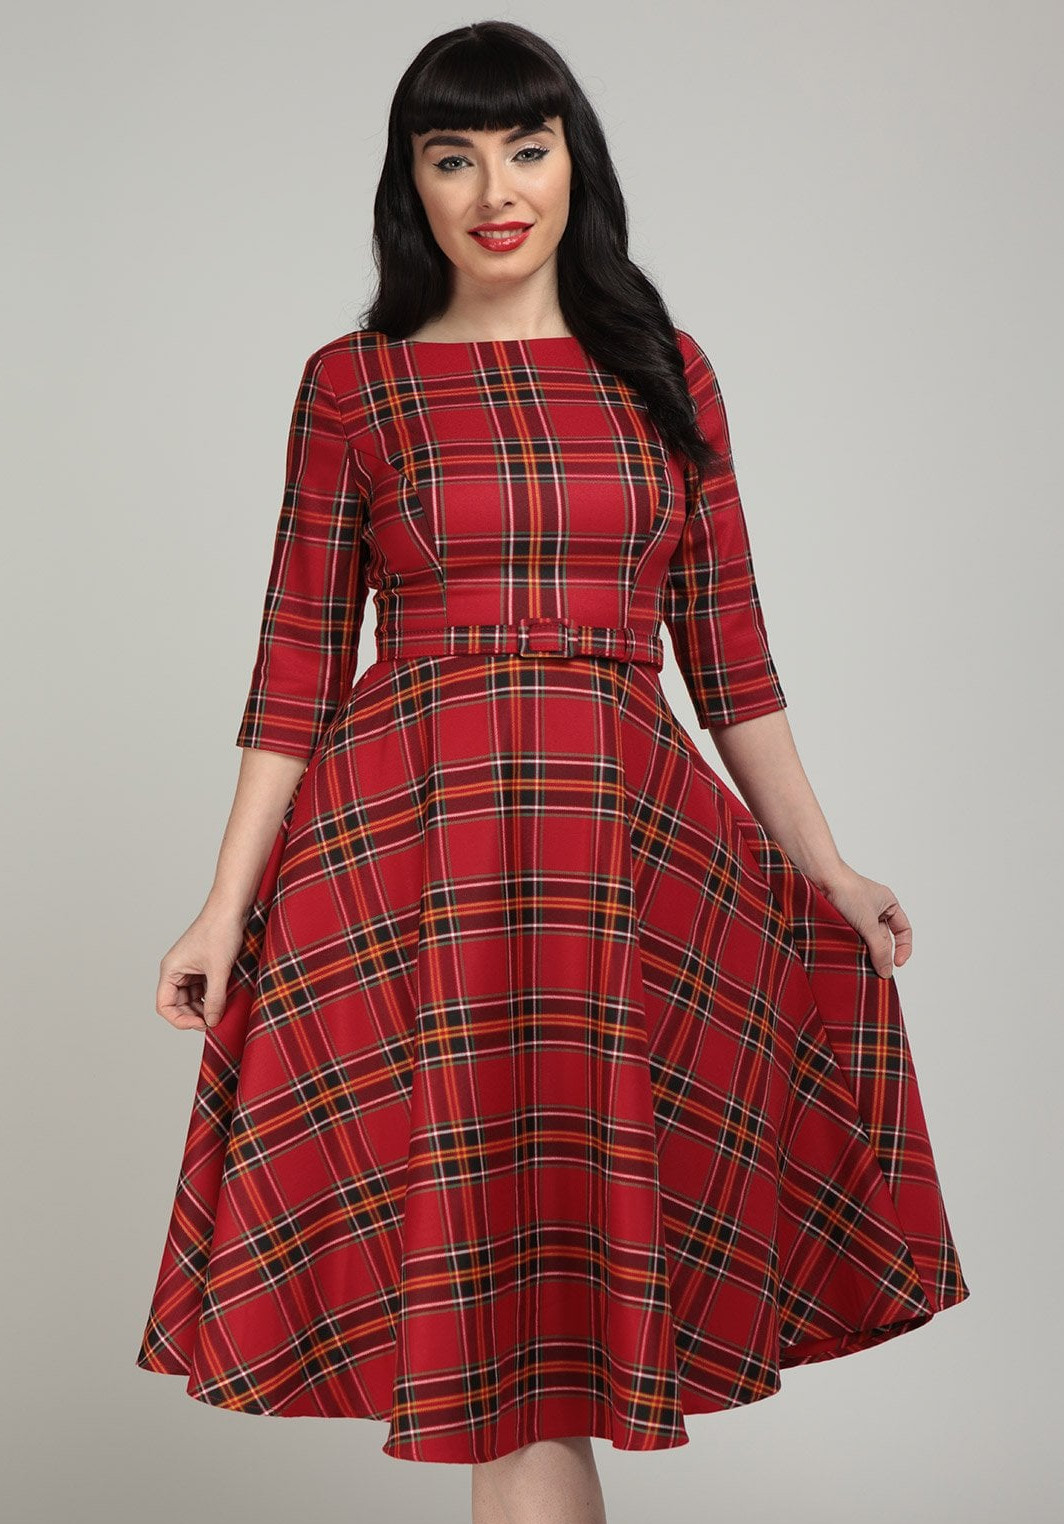 Collectif Suzanne Swing Dress